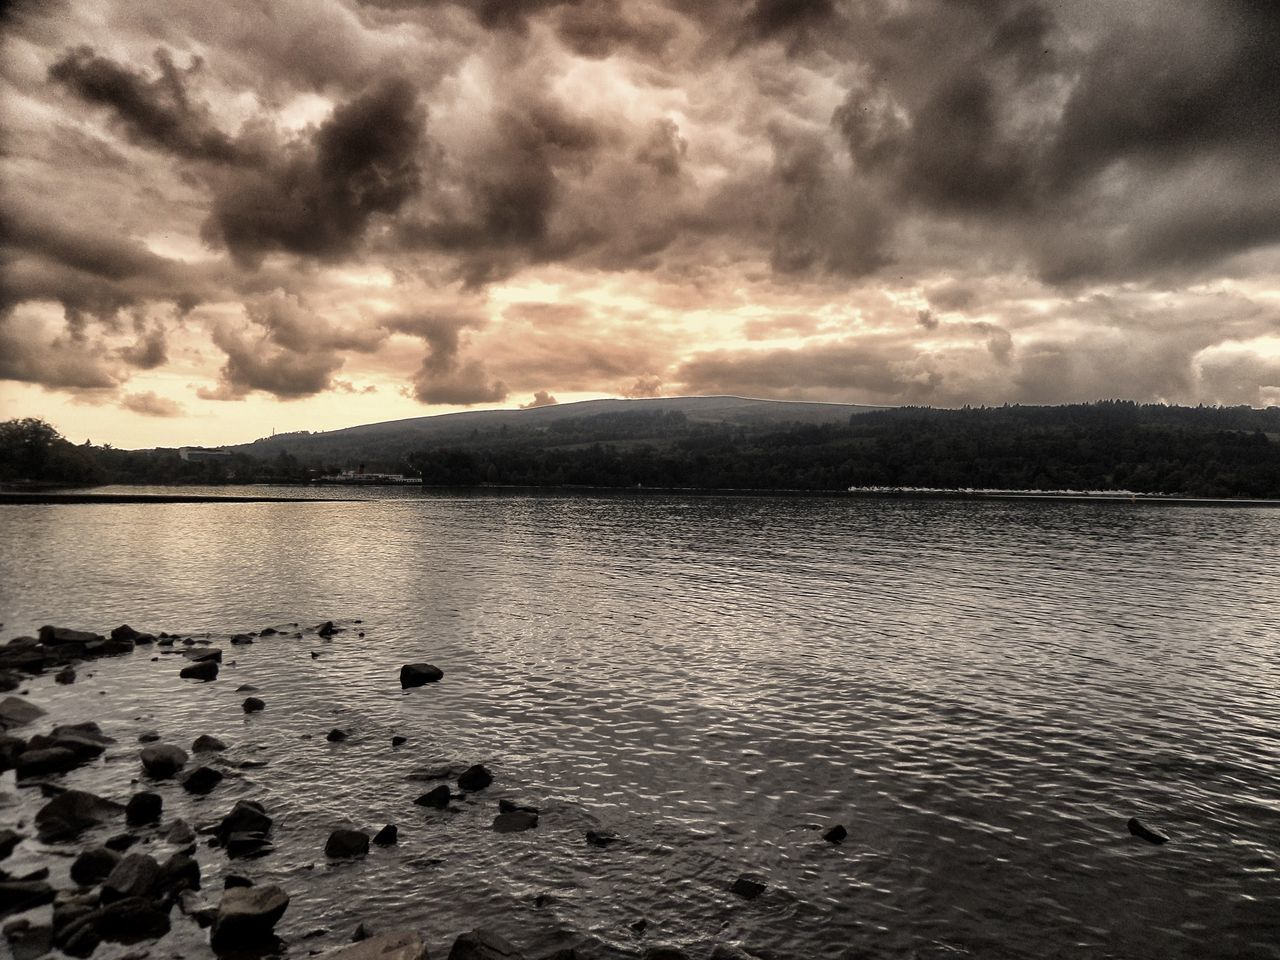 cloud - sky, sky, water, lake, nature, tranquility, scenics, no people, beauty in nature, outdoors, tranquil scene, sunset, storm cloud, mountain, day